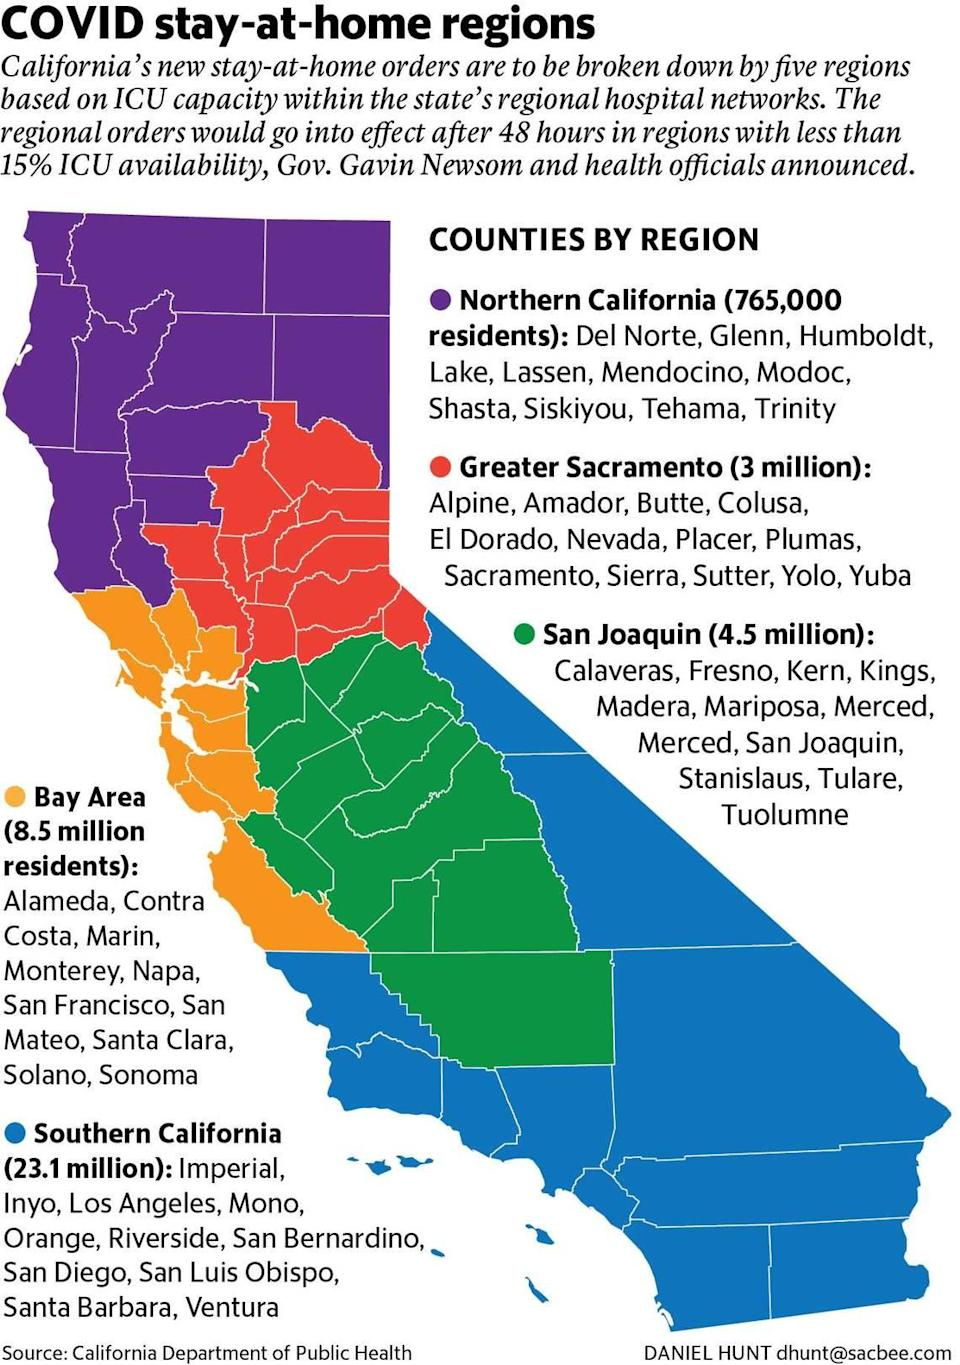 A map showing California's stay-at-home regions, based on hospital ICU capacity